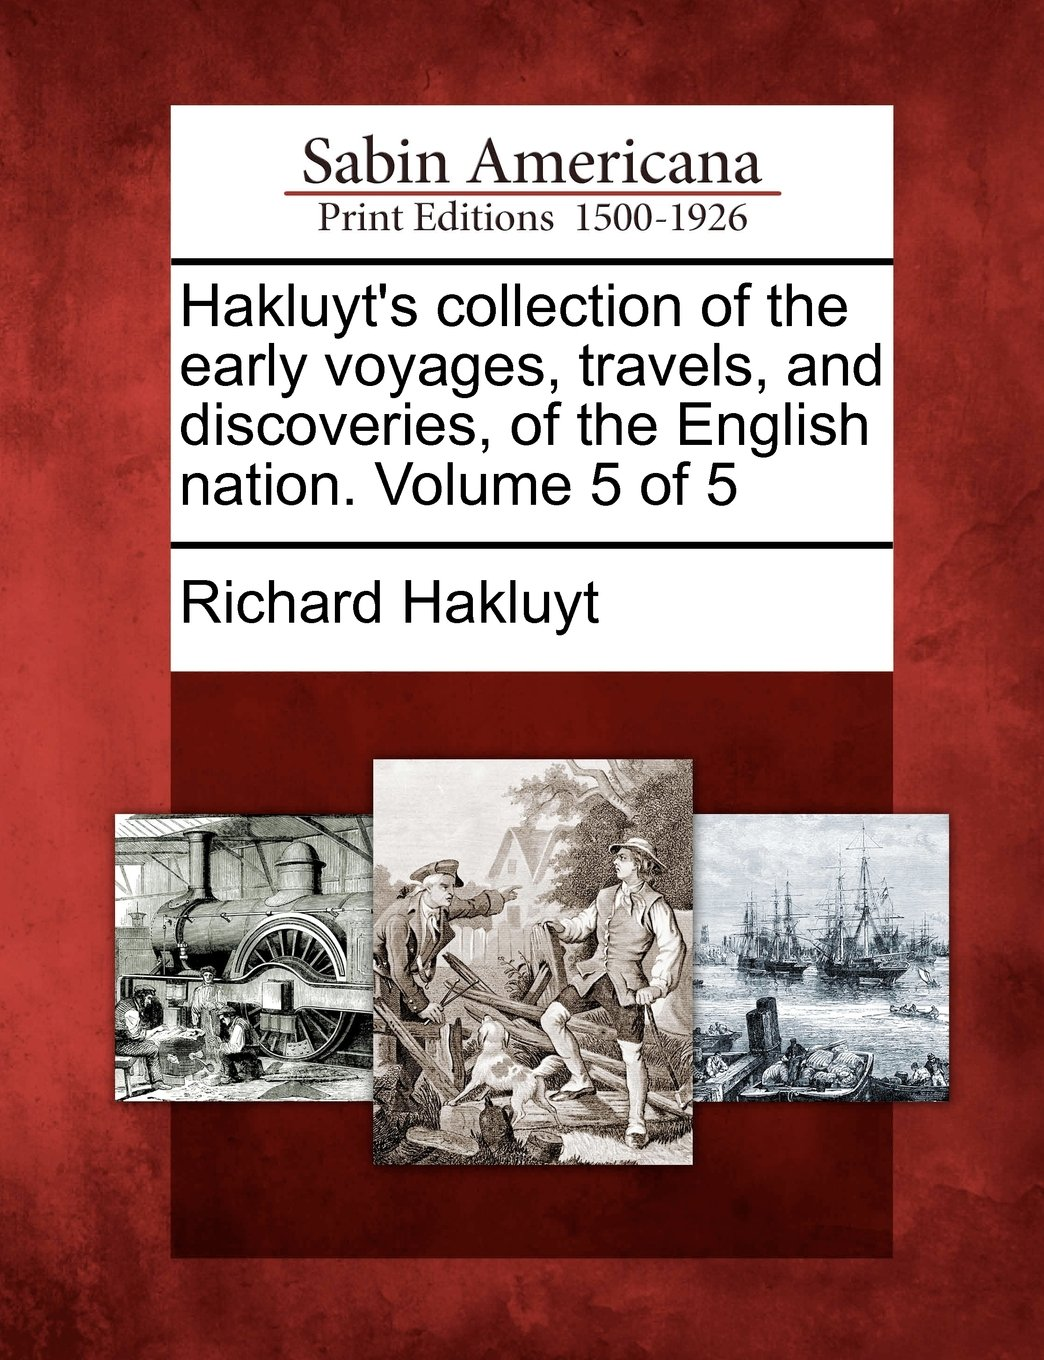 Download Hakluyt's collection of the early voyages, travels, and discoveries, of the English nation. Volume 5 of 5 ebook